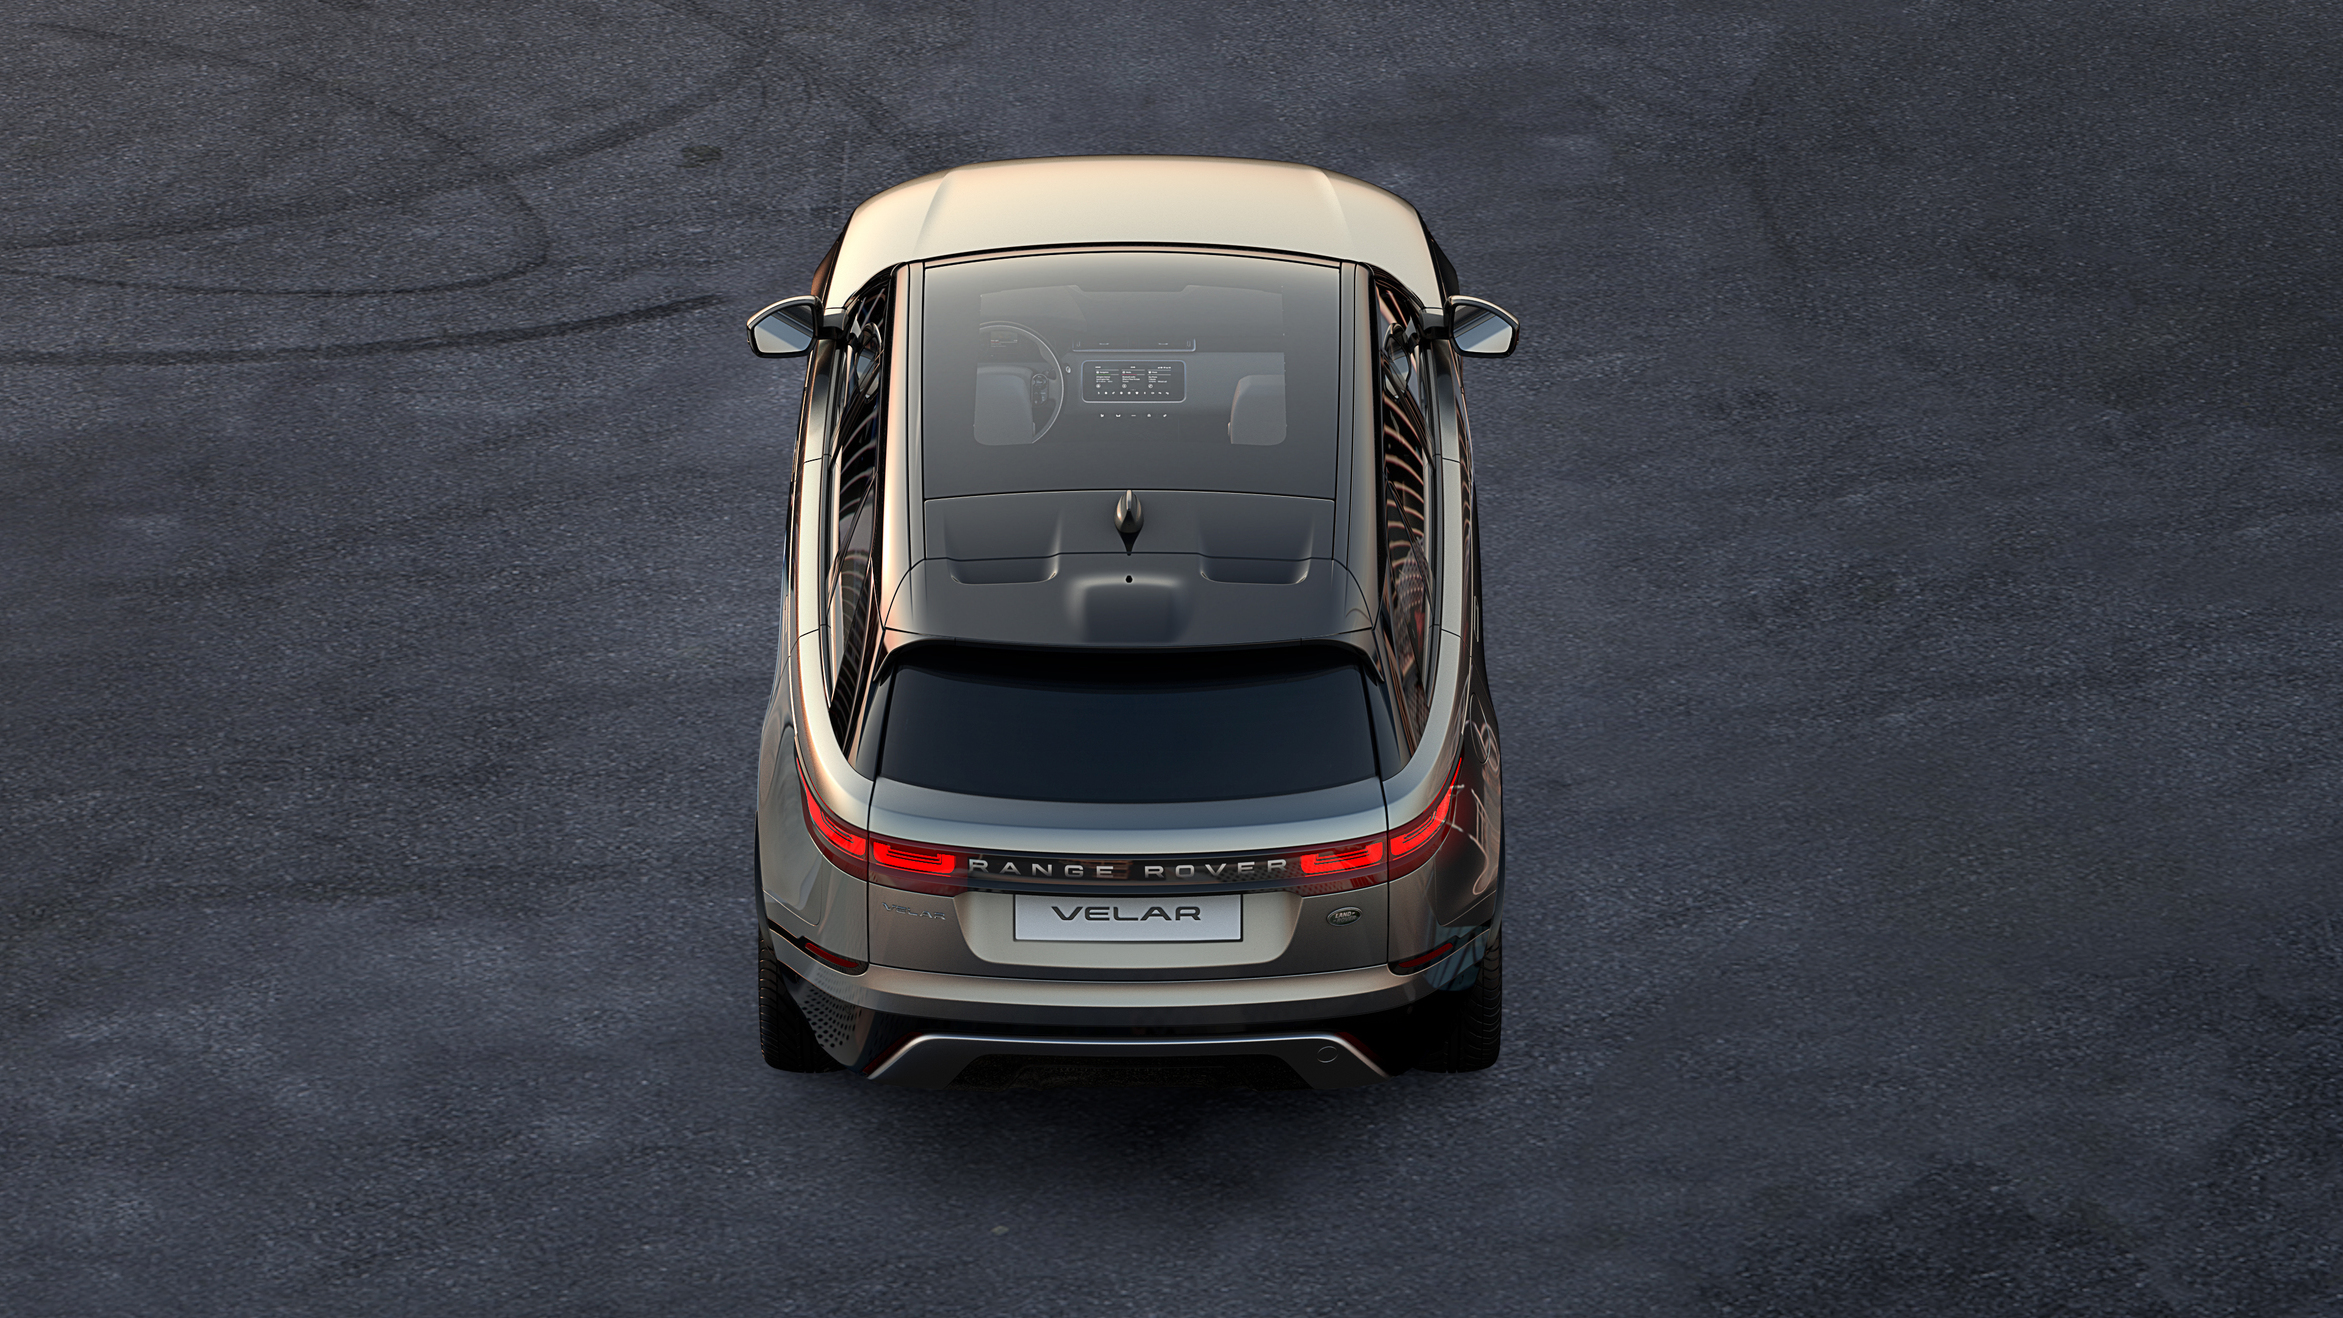 The Range Rover Velar is a high-end spin on Jaguar F-Pace ...